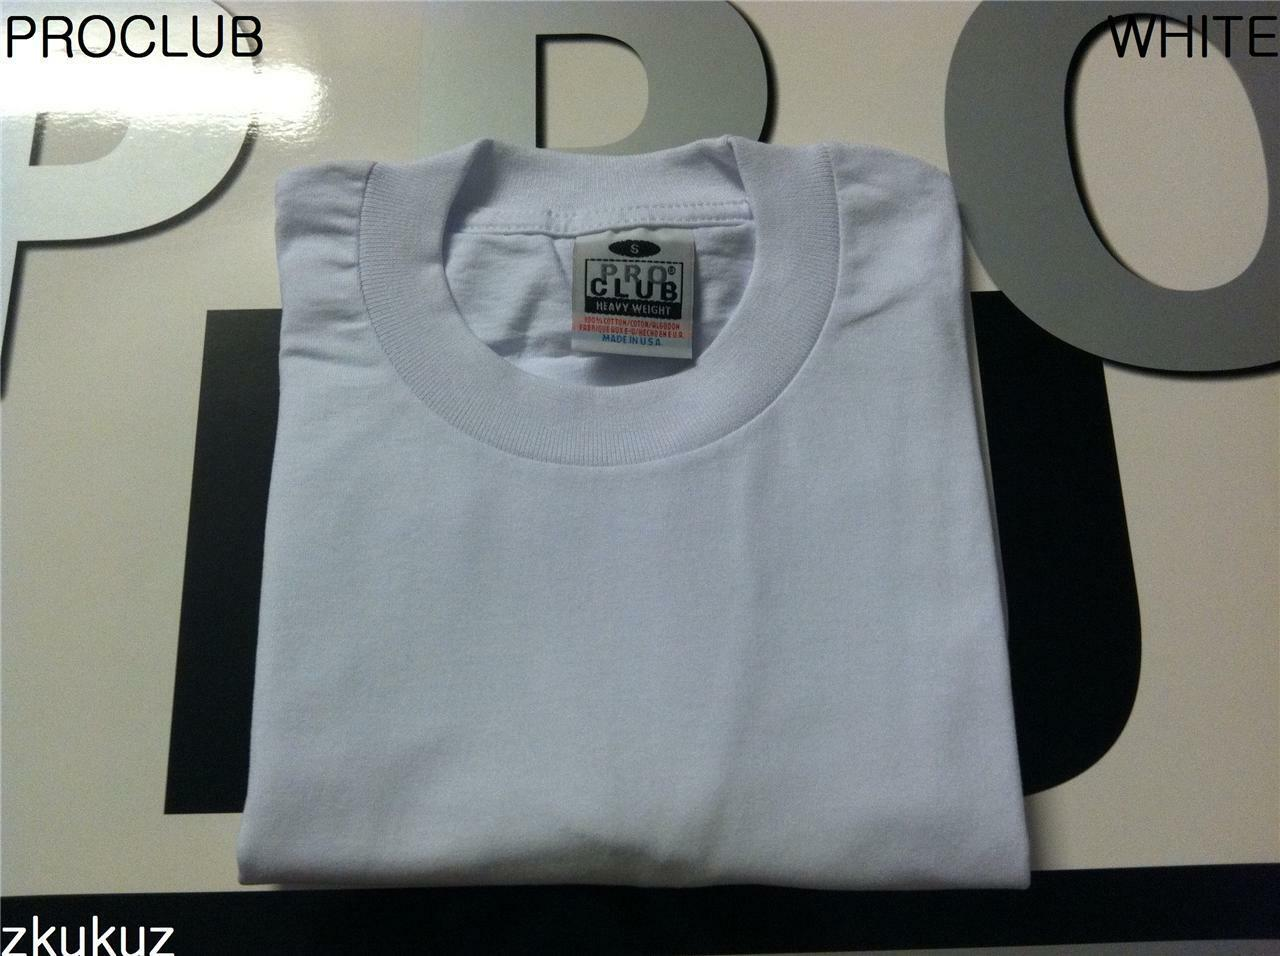 12 NEW PROCLUB HEAVY WEIGHT T-SHIRT WHITE PLAIN PRO CLUB BLANK S-3XLT 12PC